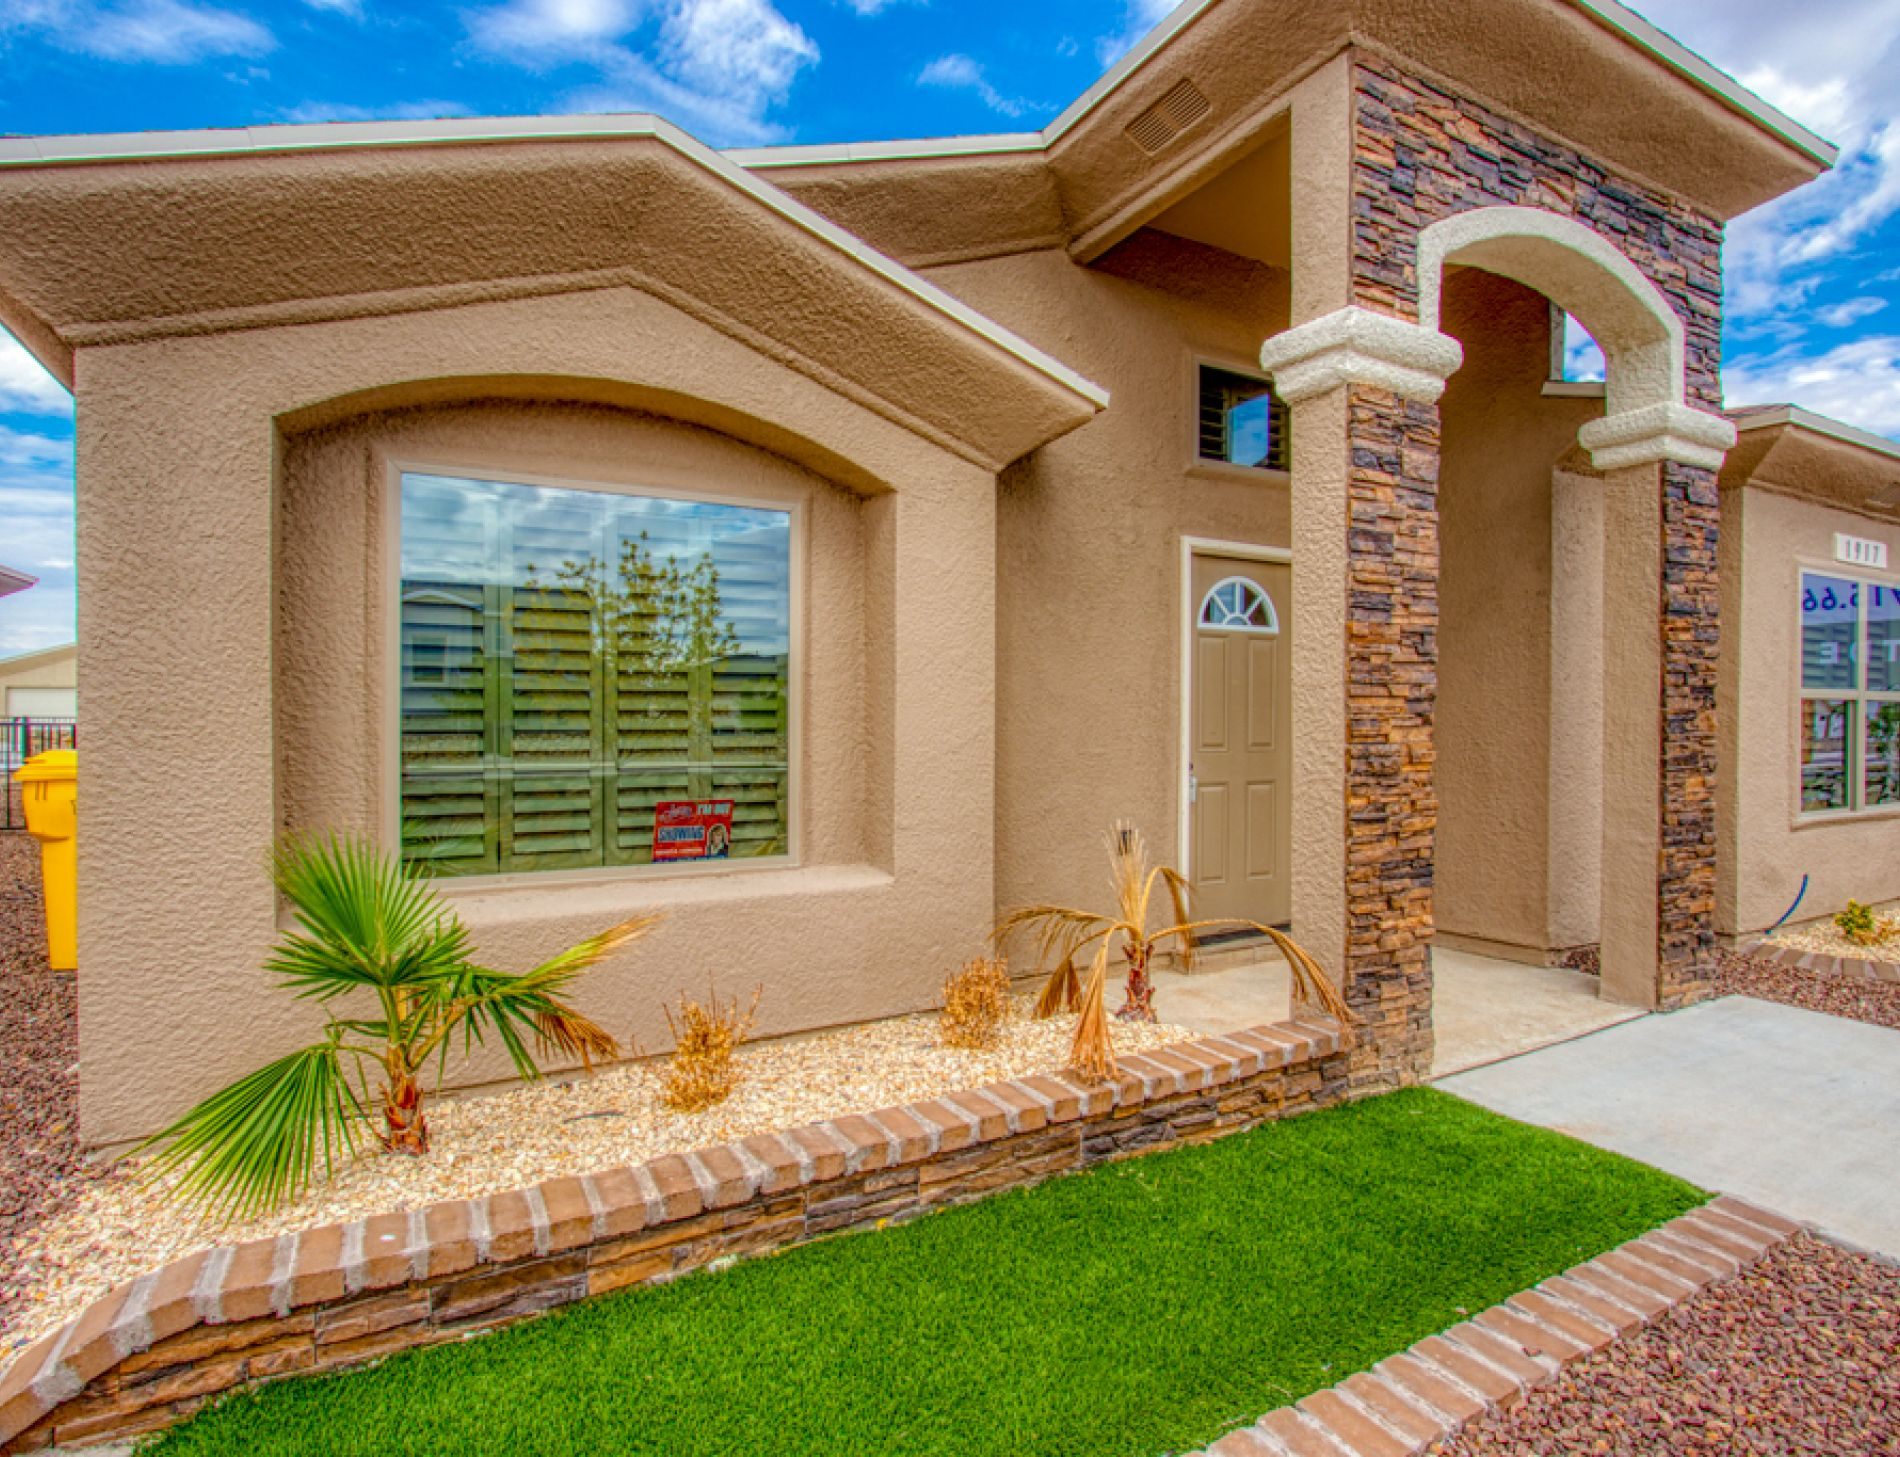 El Paso Home Builder Quality New Houses Edward S Homes Model Homes